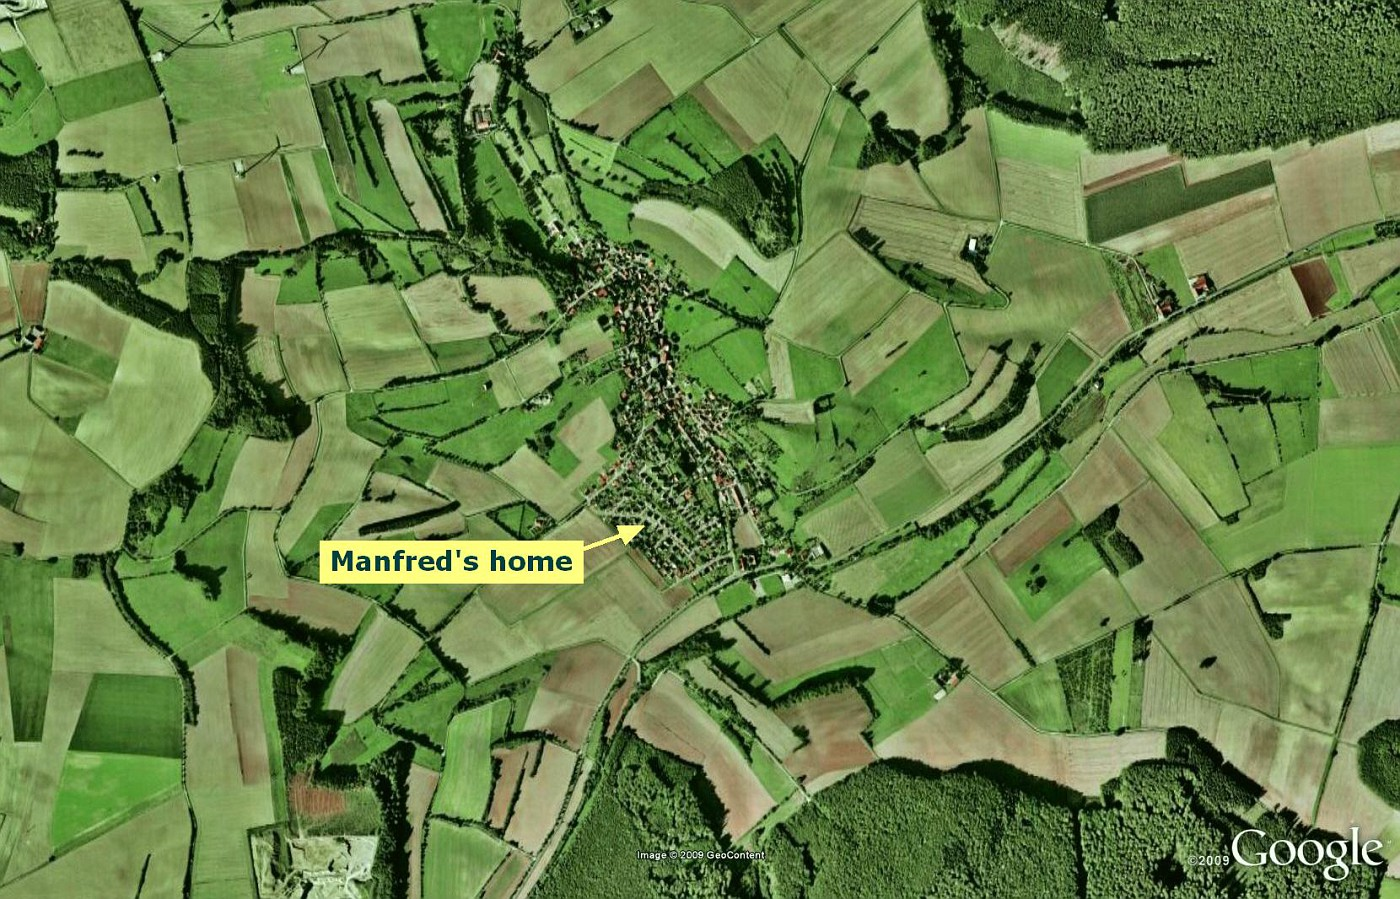 Manfred's home